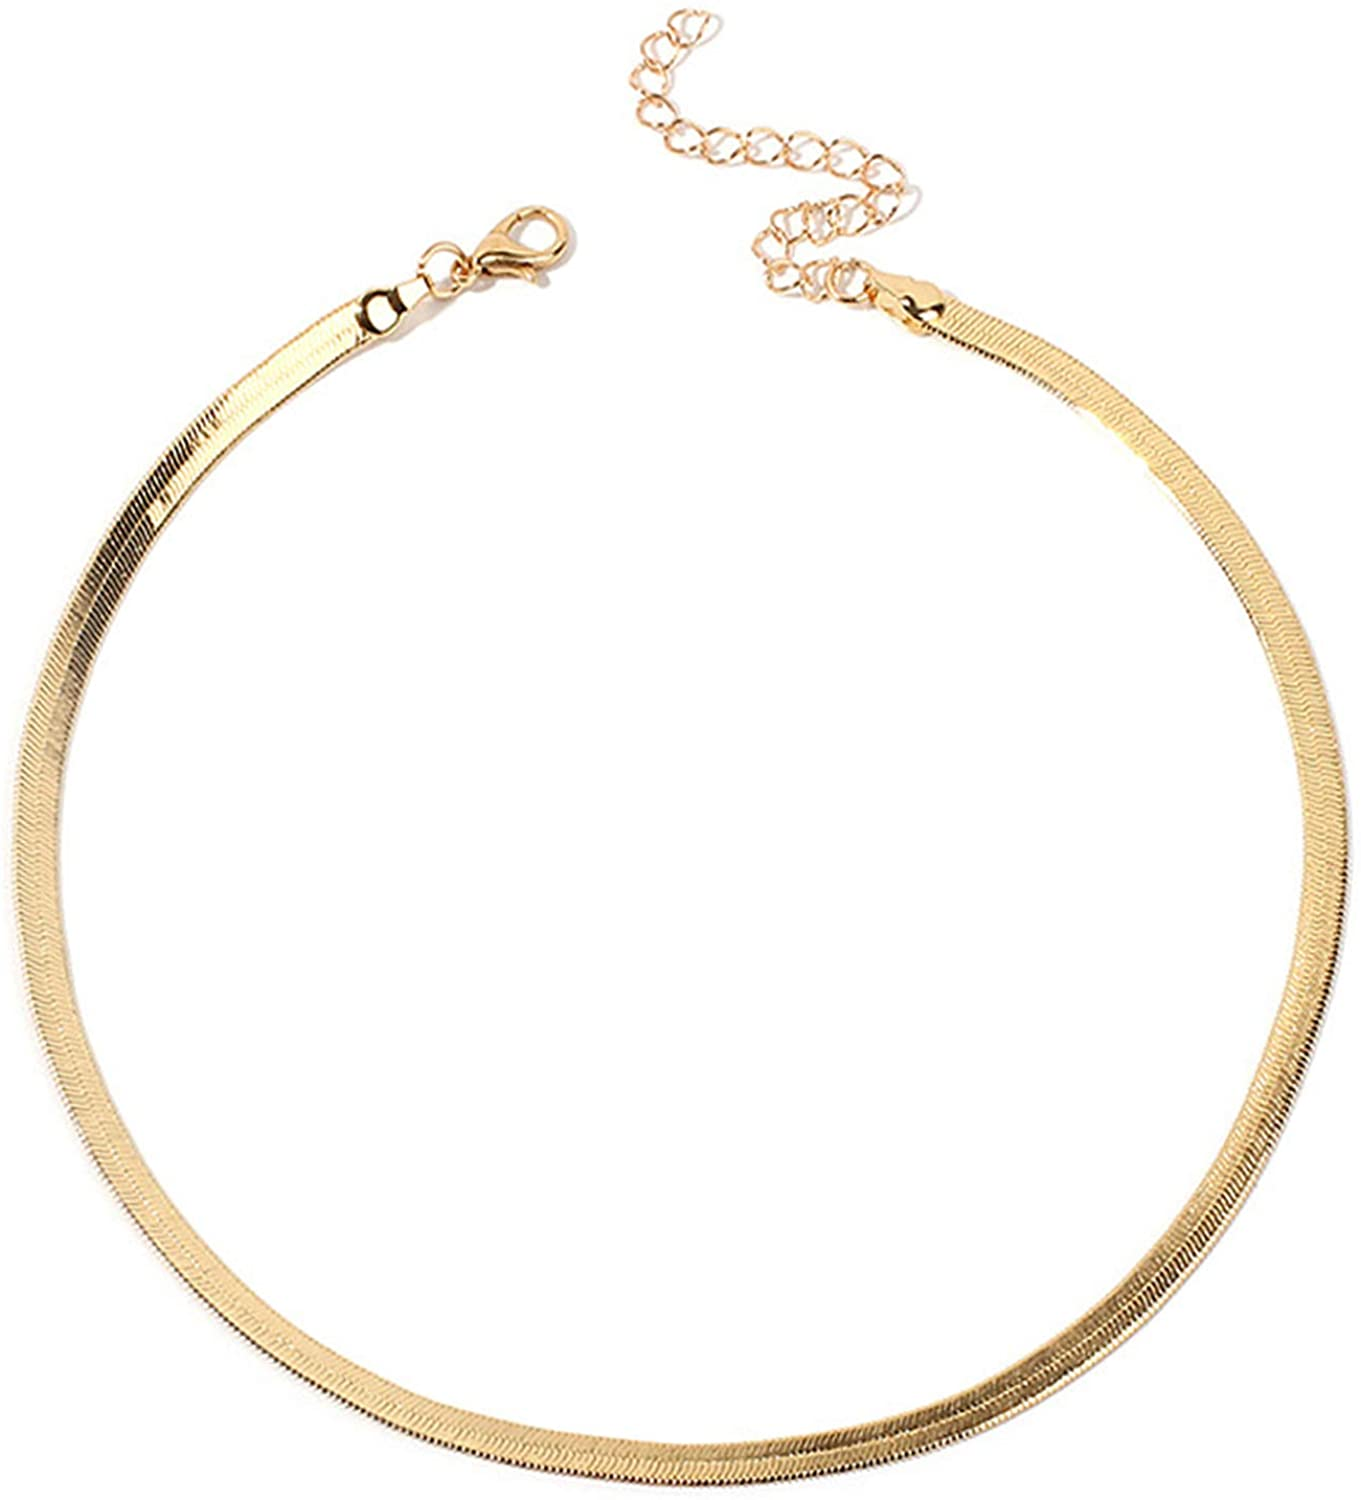 HUASAI 14K Gold Plated Snake Chain Necklace for Women,Adjustable 3MM Flat Snake Calvice Herringbone Chain Choker Necklace Dainty Jewelry Adjustable